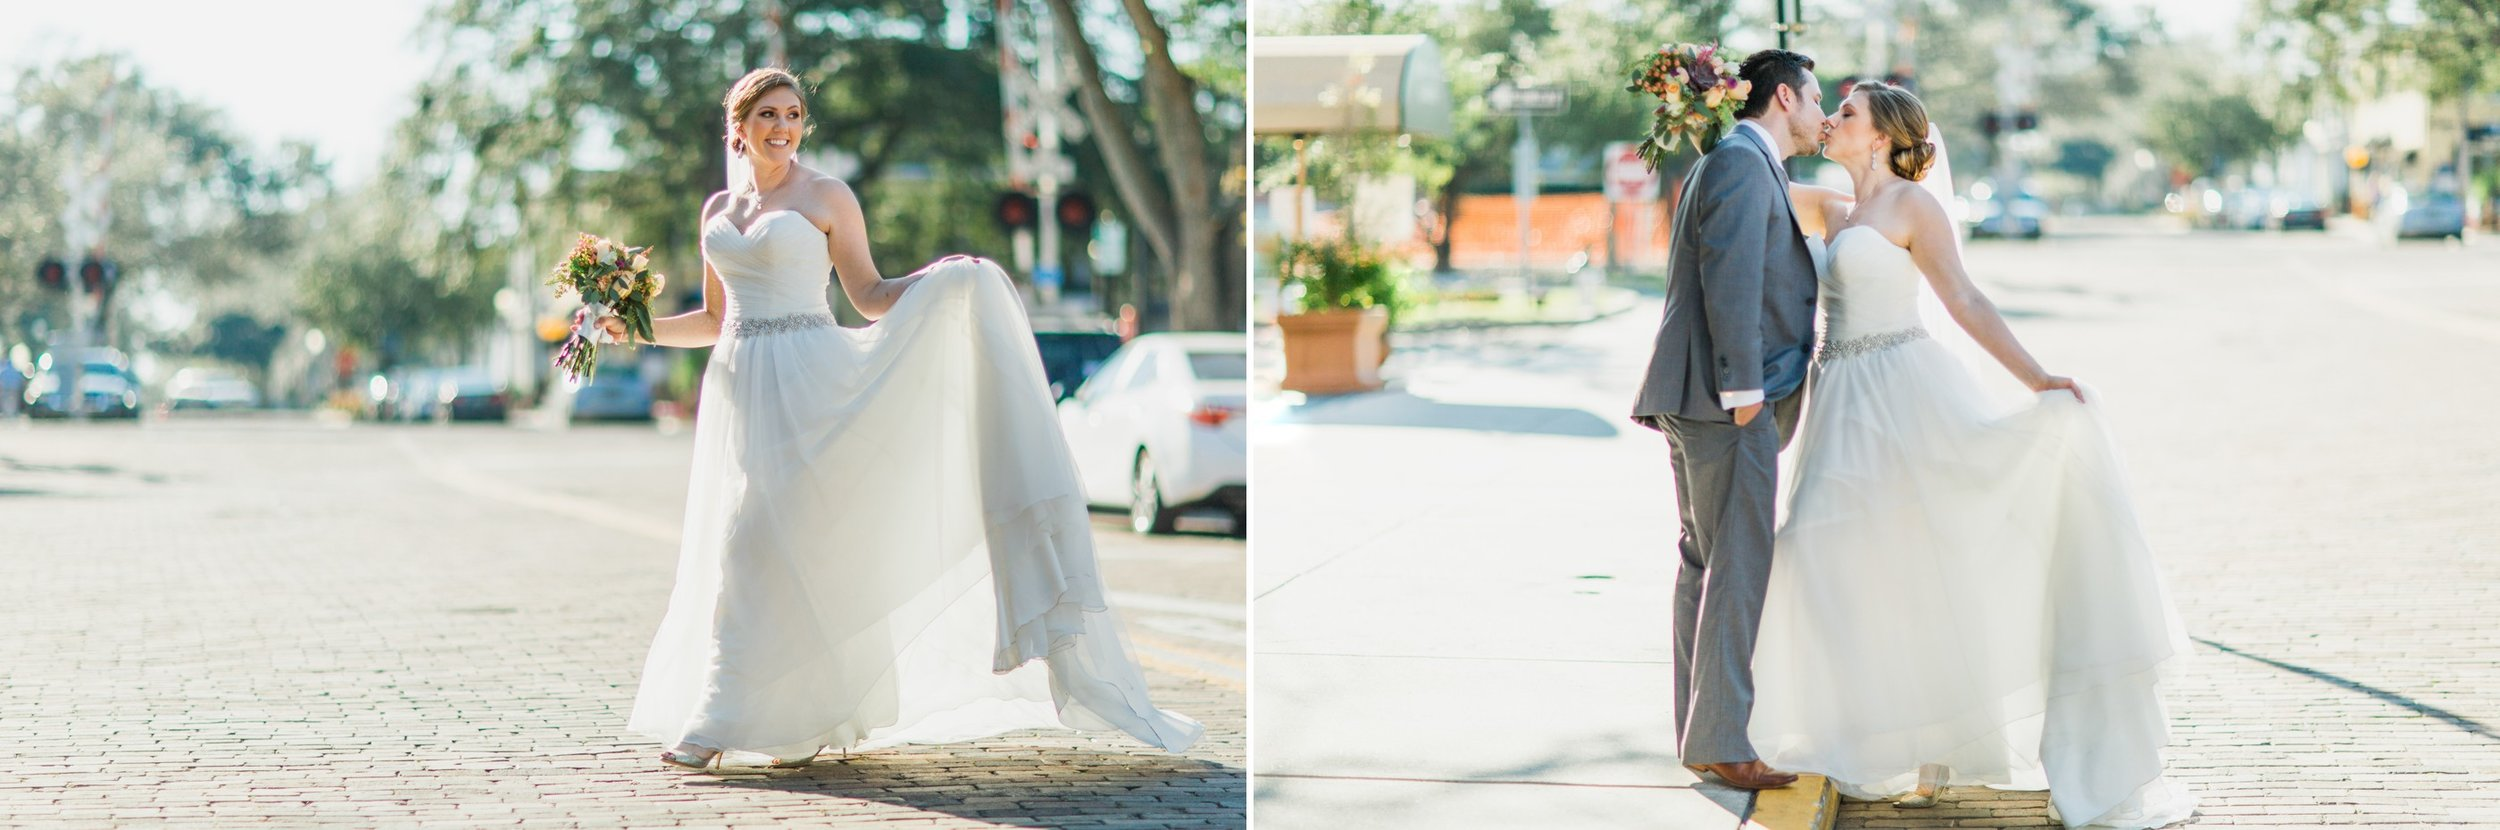 Rustic chic Bride + Groom photos in a princess gowns in Winter Park Farmers Market Wedding